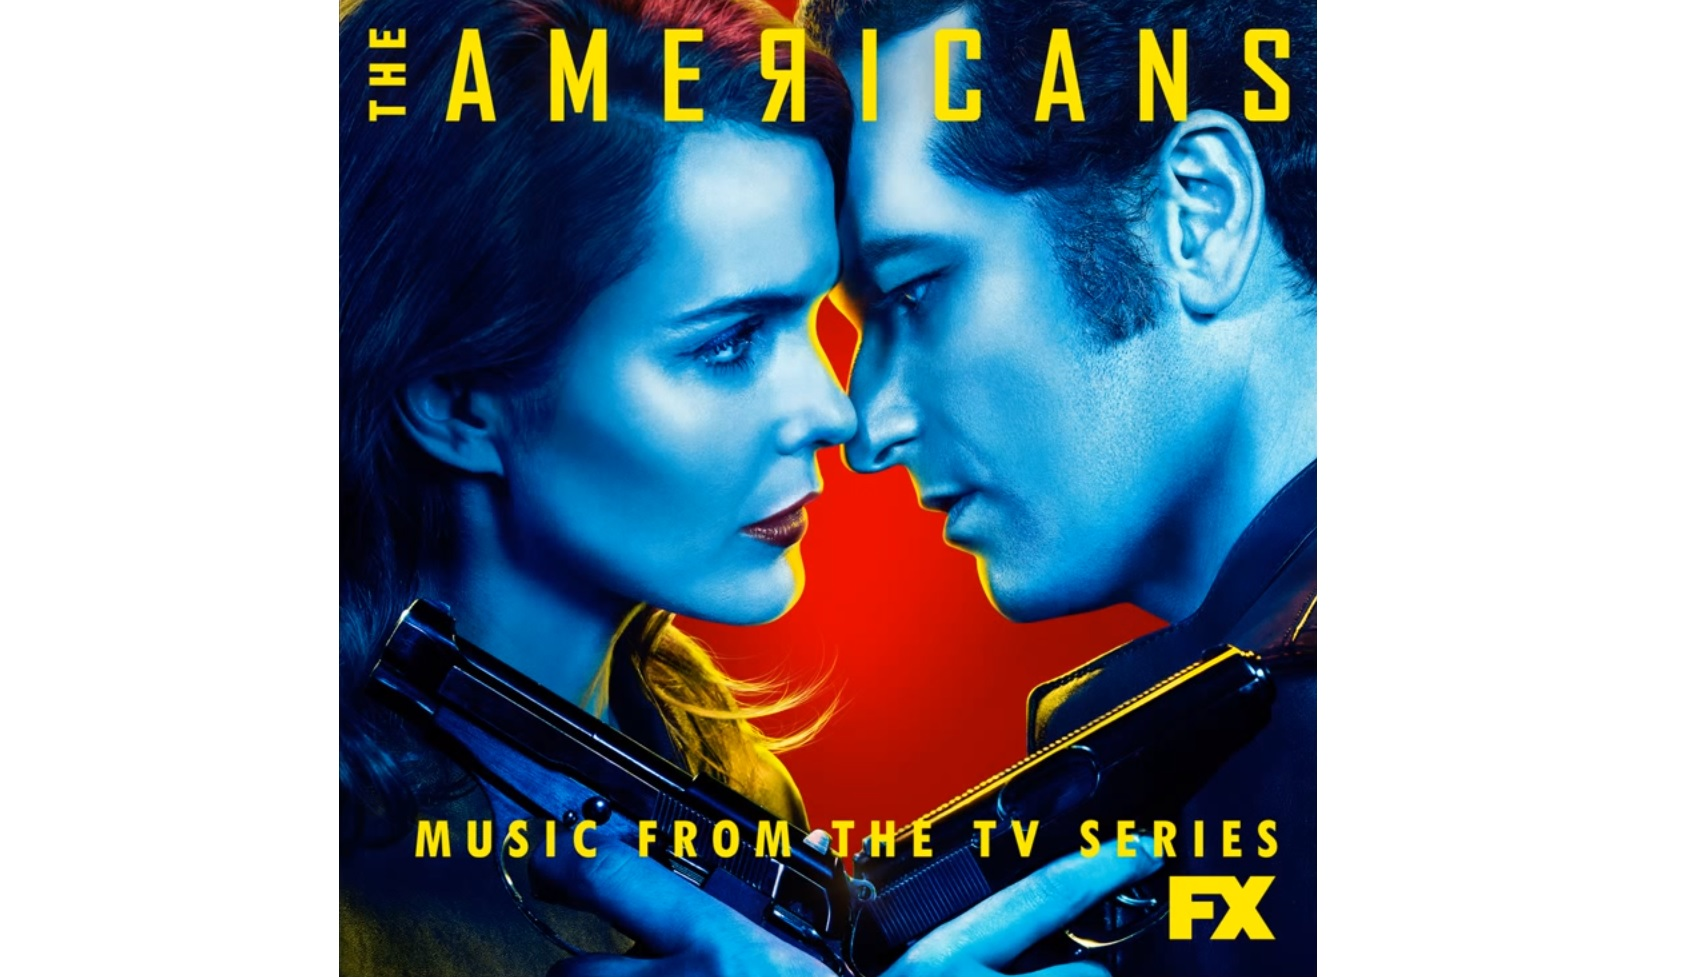 The Americans (Serie de TV) – Soundtrack, Tráiler